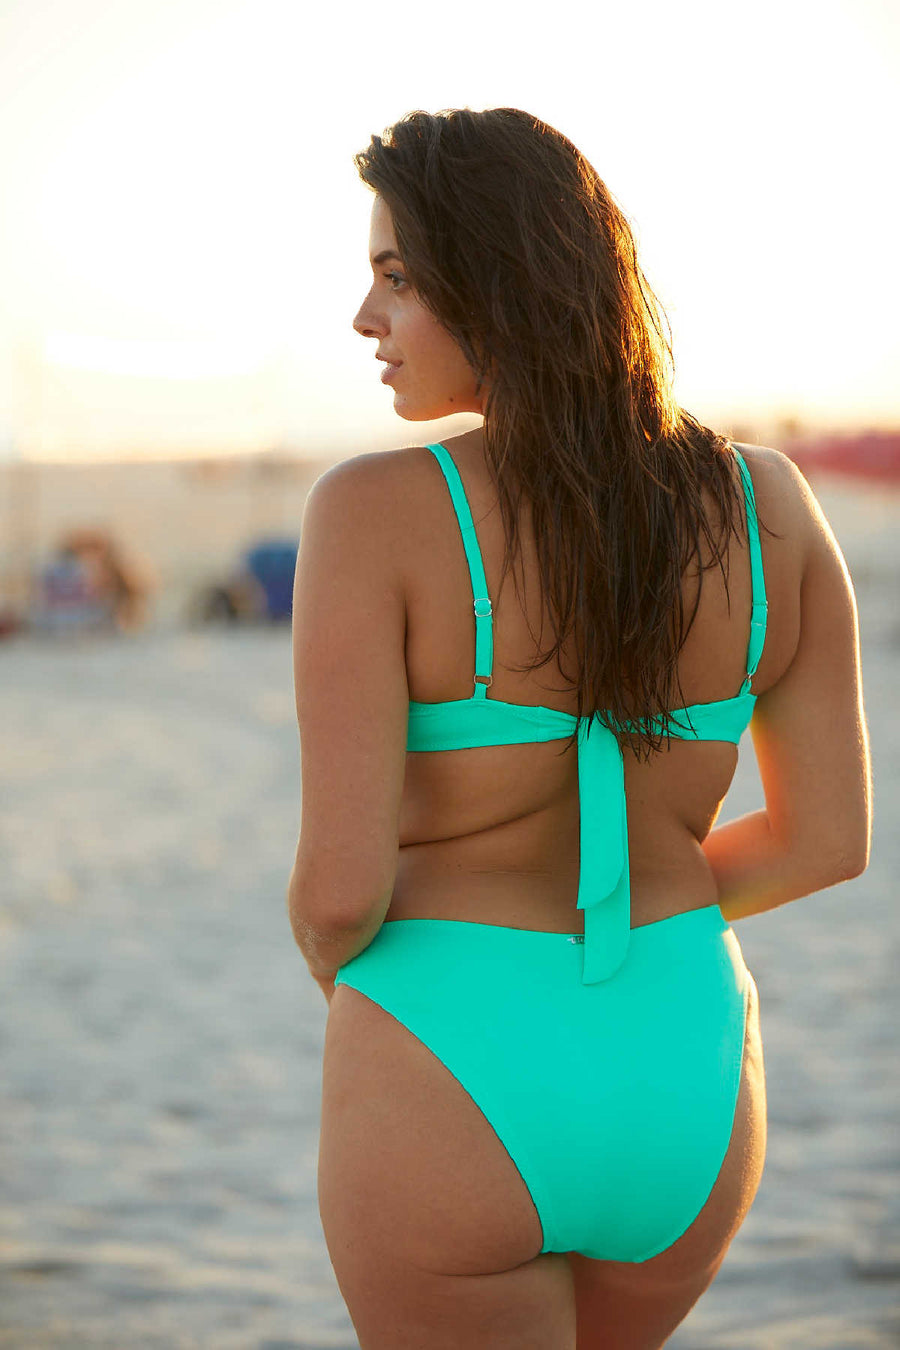 Woman standing on beach wearing a two piece green bikini